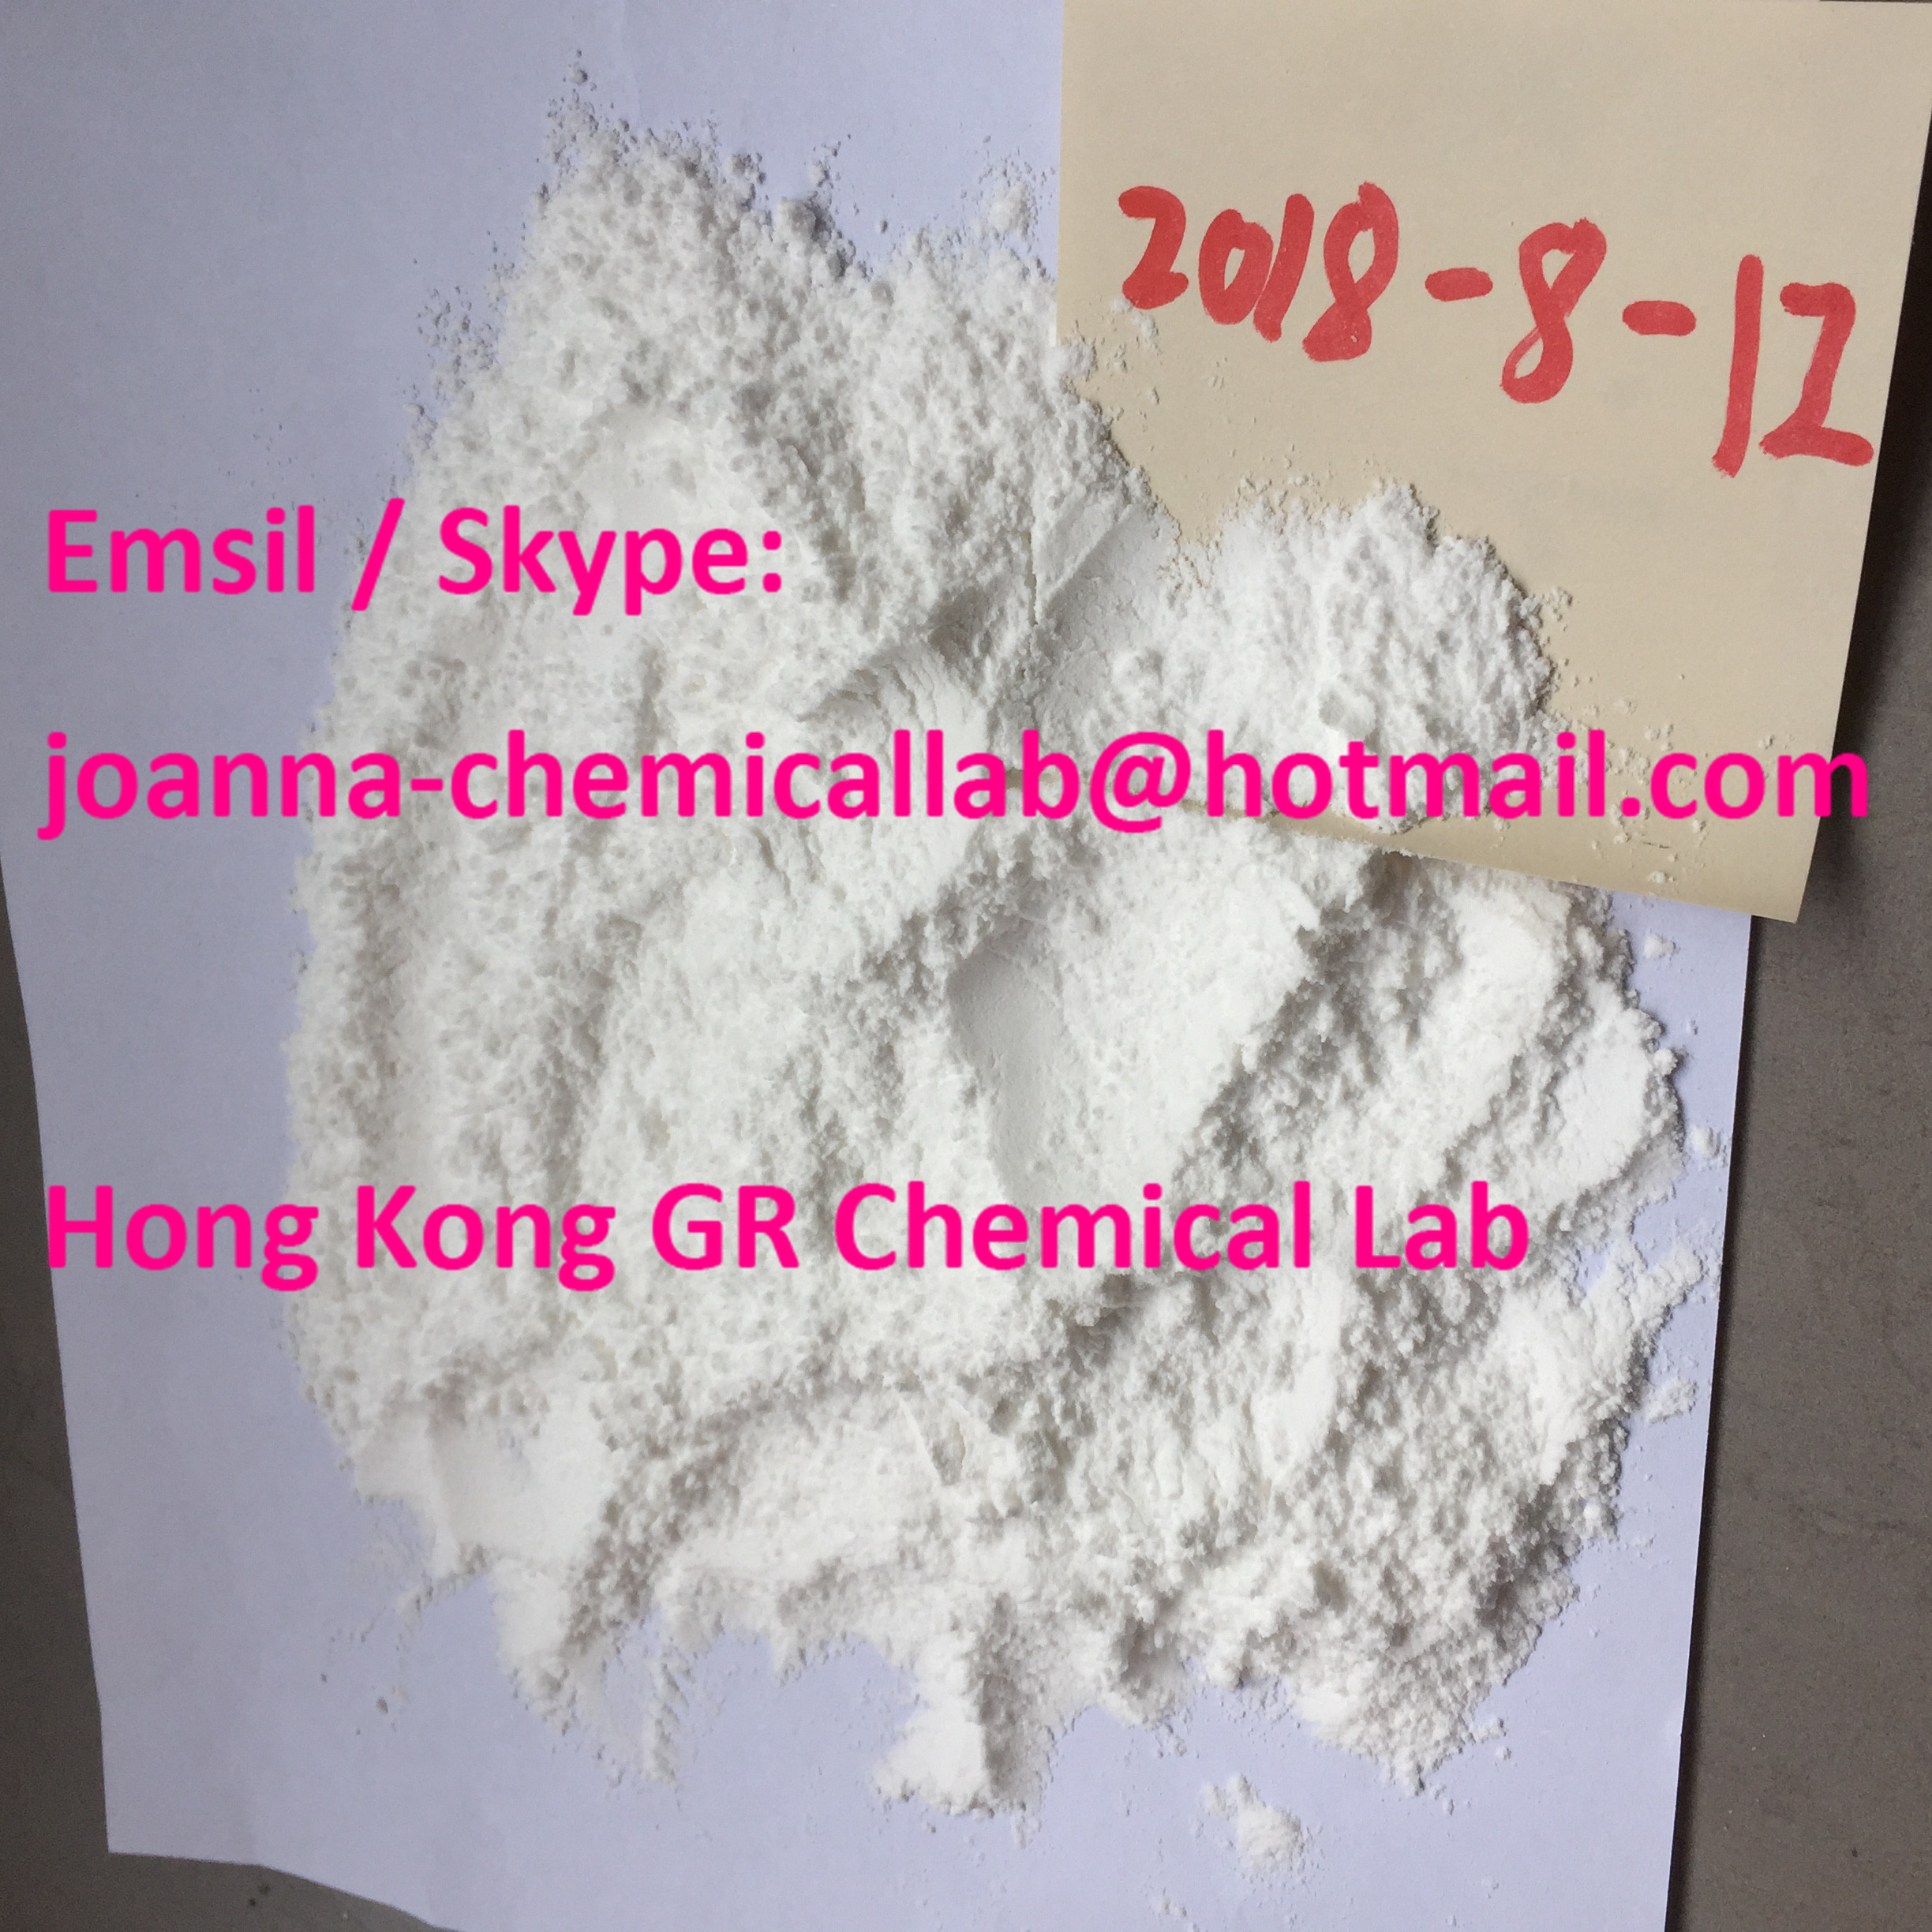 MAF fentanyl HCL NM2201 U-48800 U-47700 U-49900 ketamine supplier